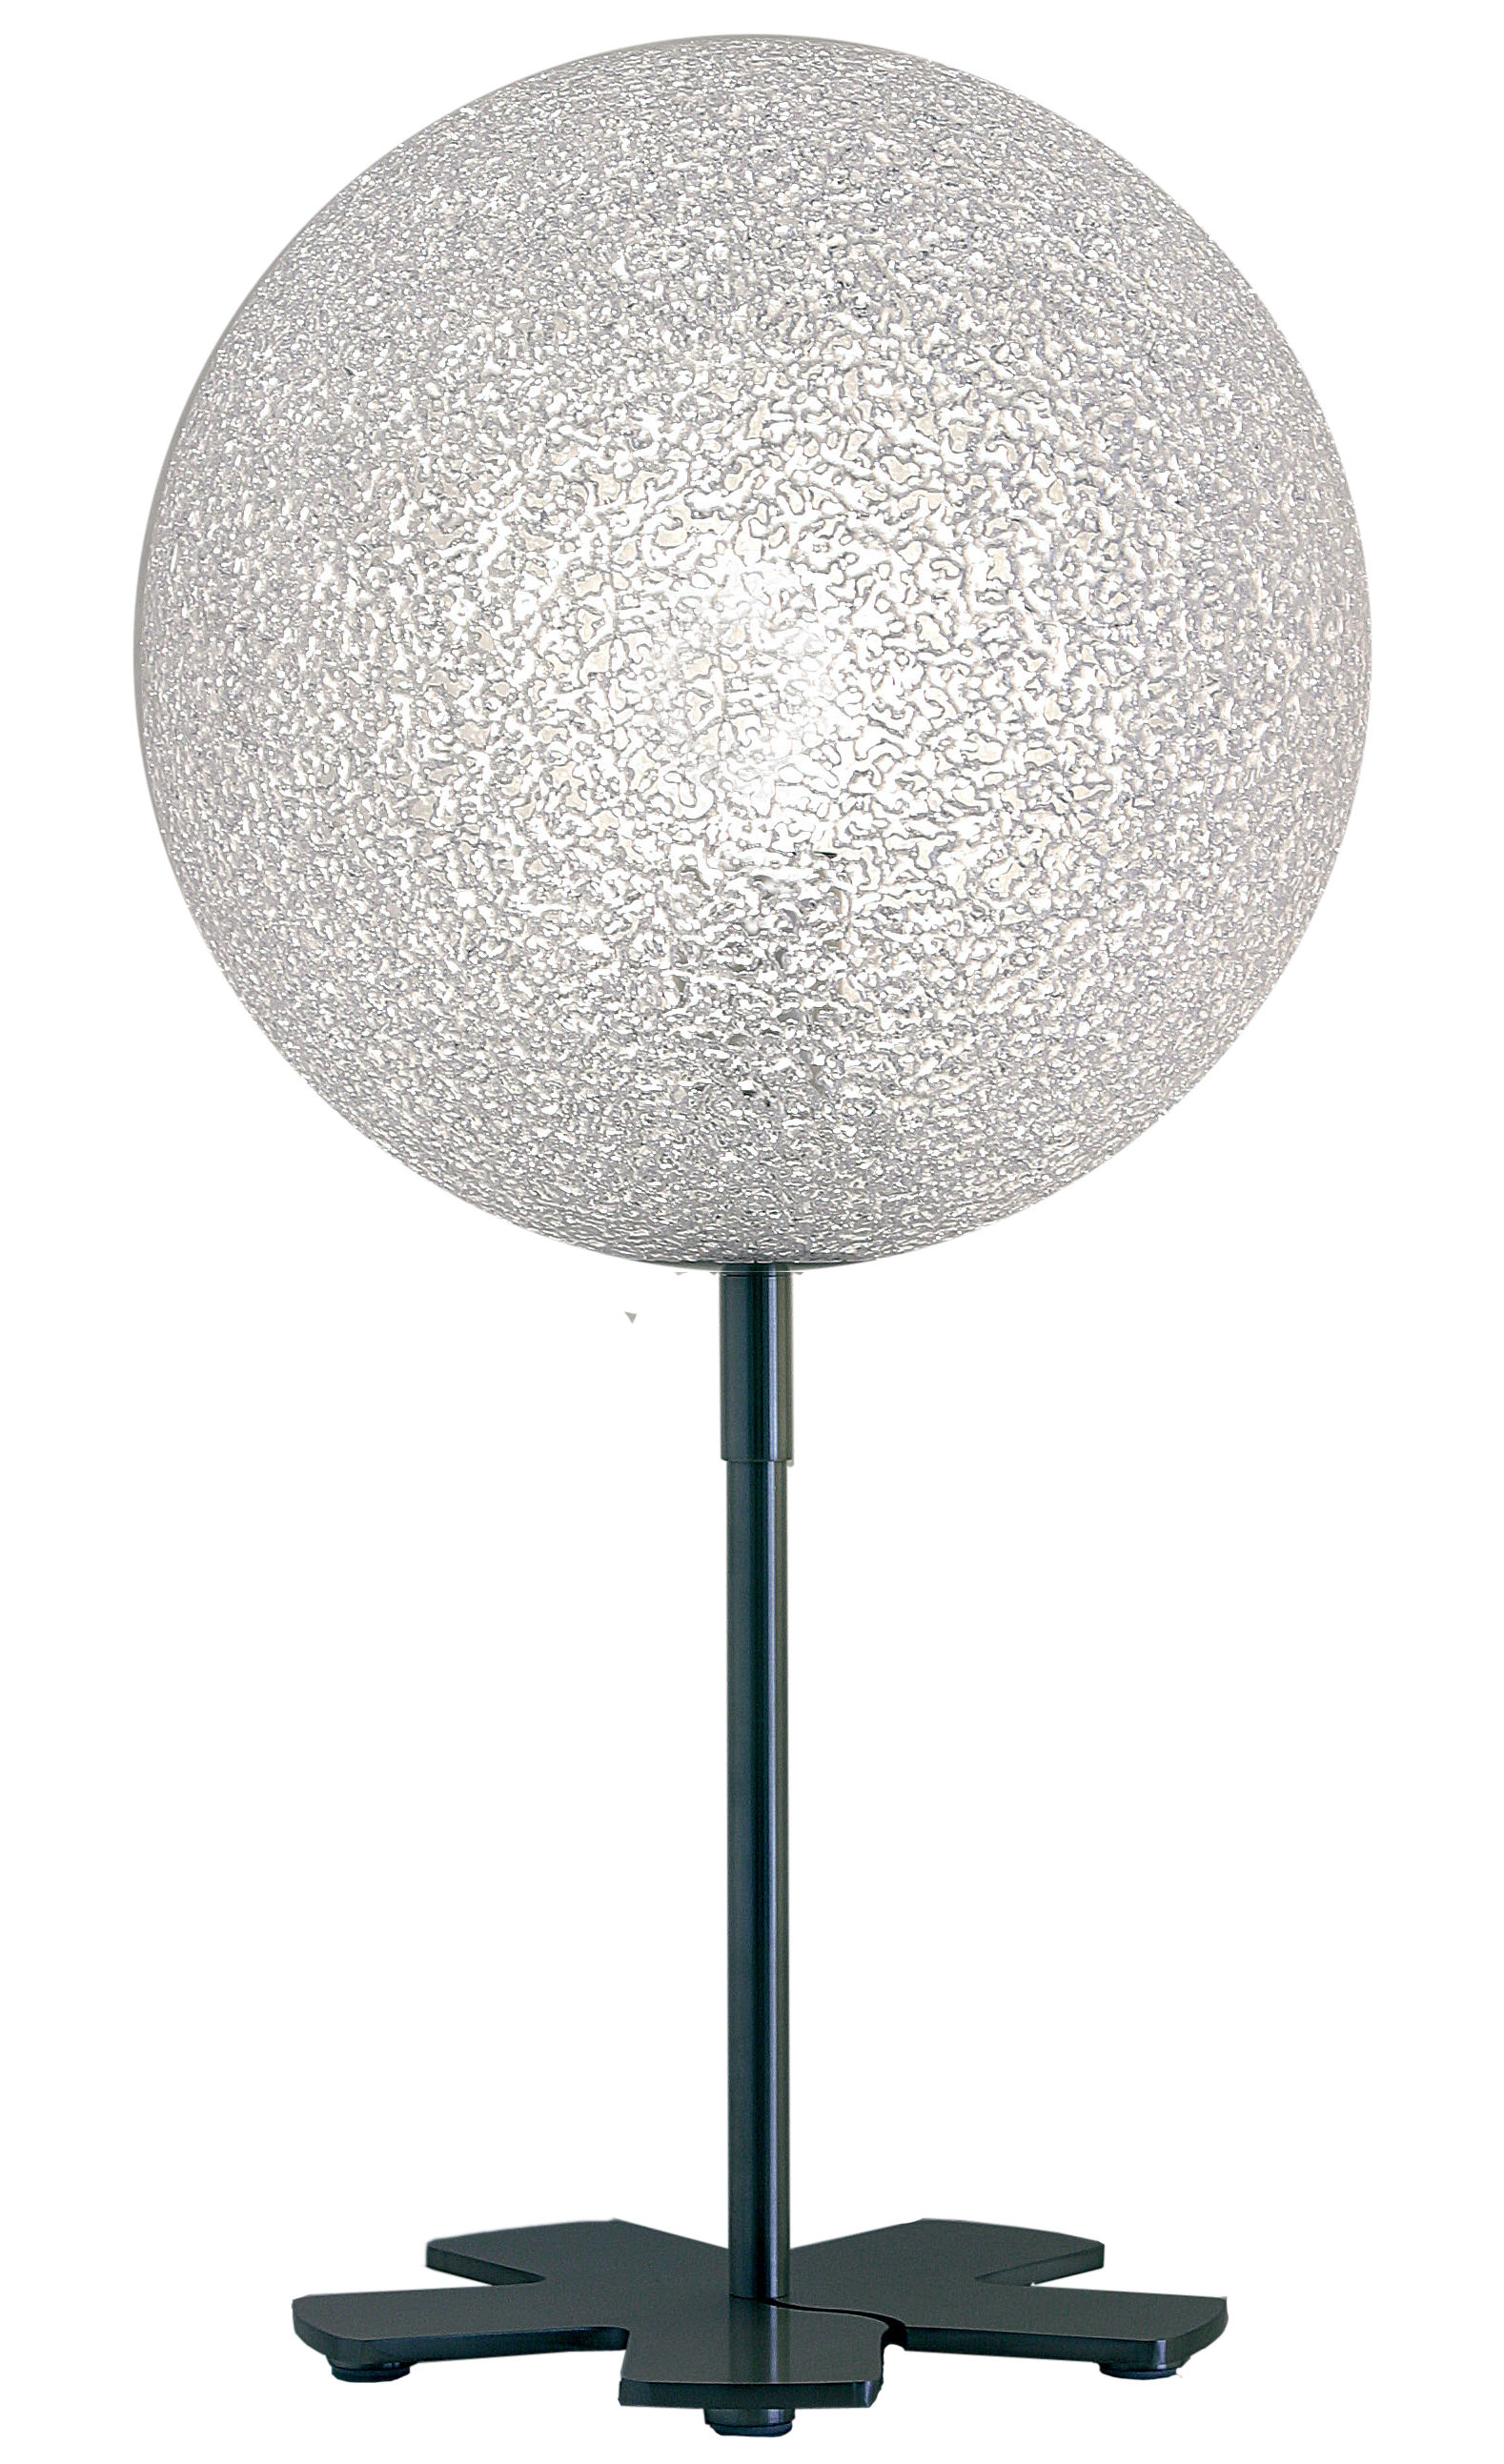 Lighting - Table Lamps - IceGlobe Table lamp by Lumen Center Italia - White - Brushed nickel, Polycarbonate